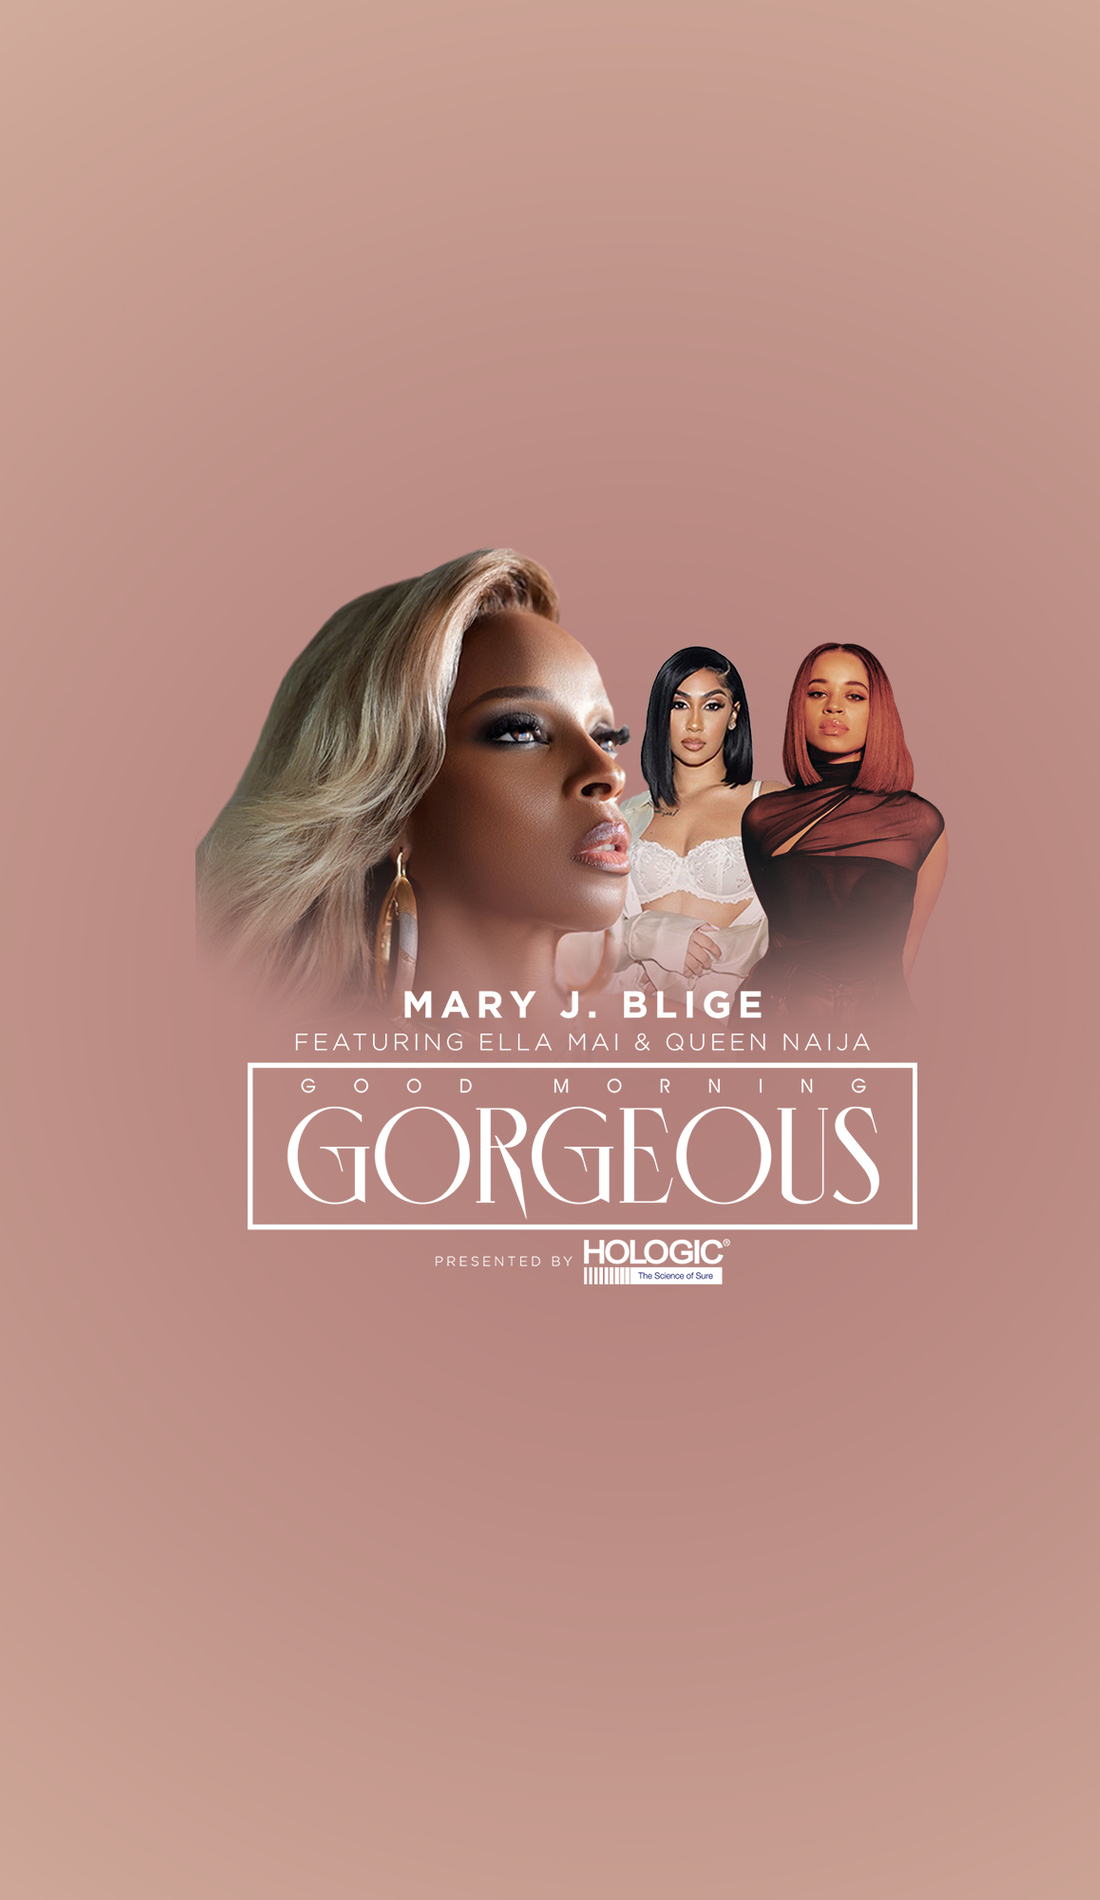 A Mary J. Blige live event